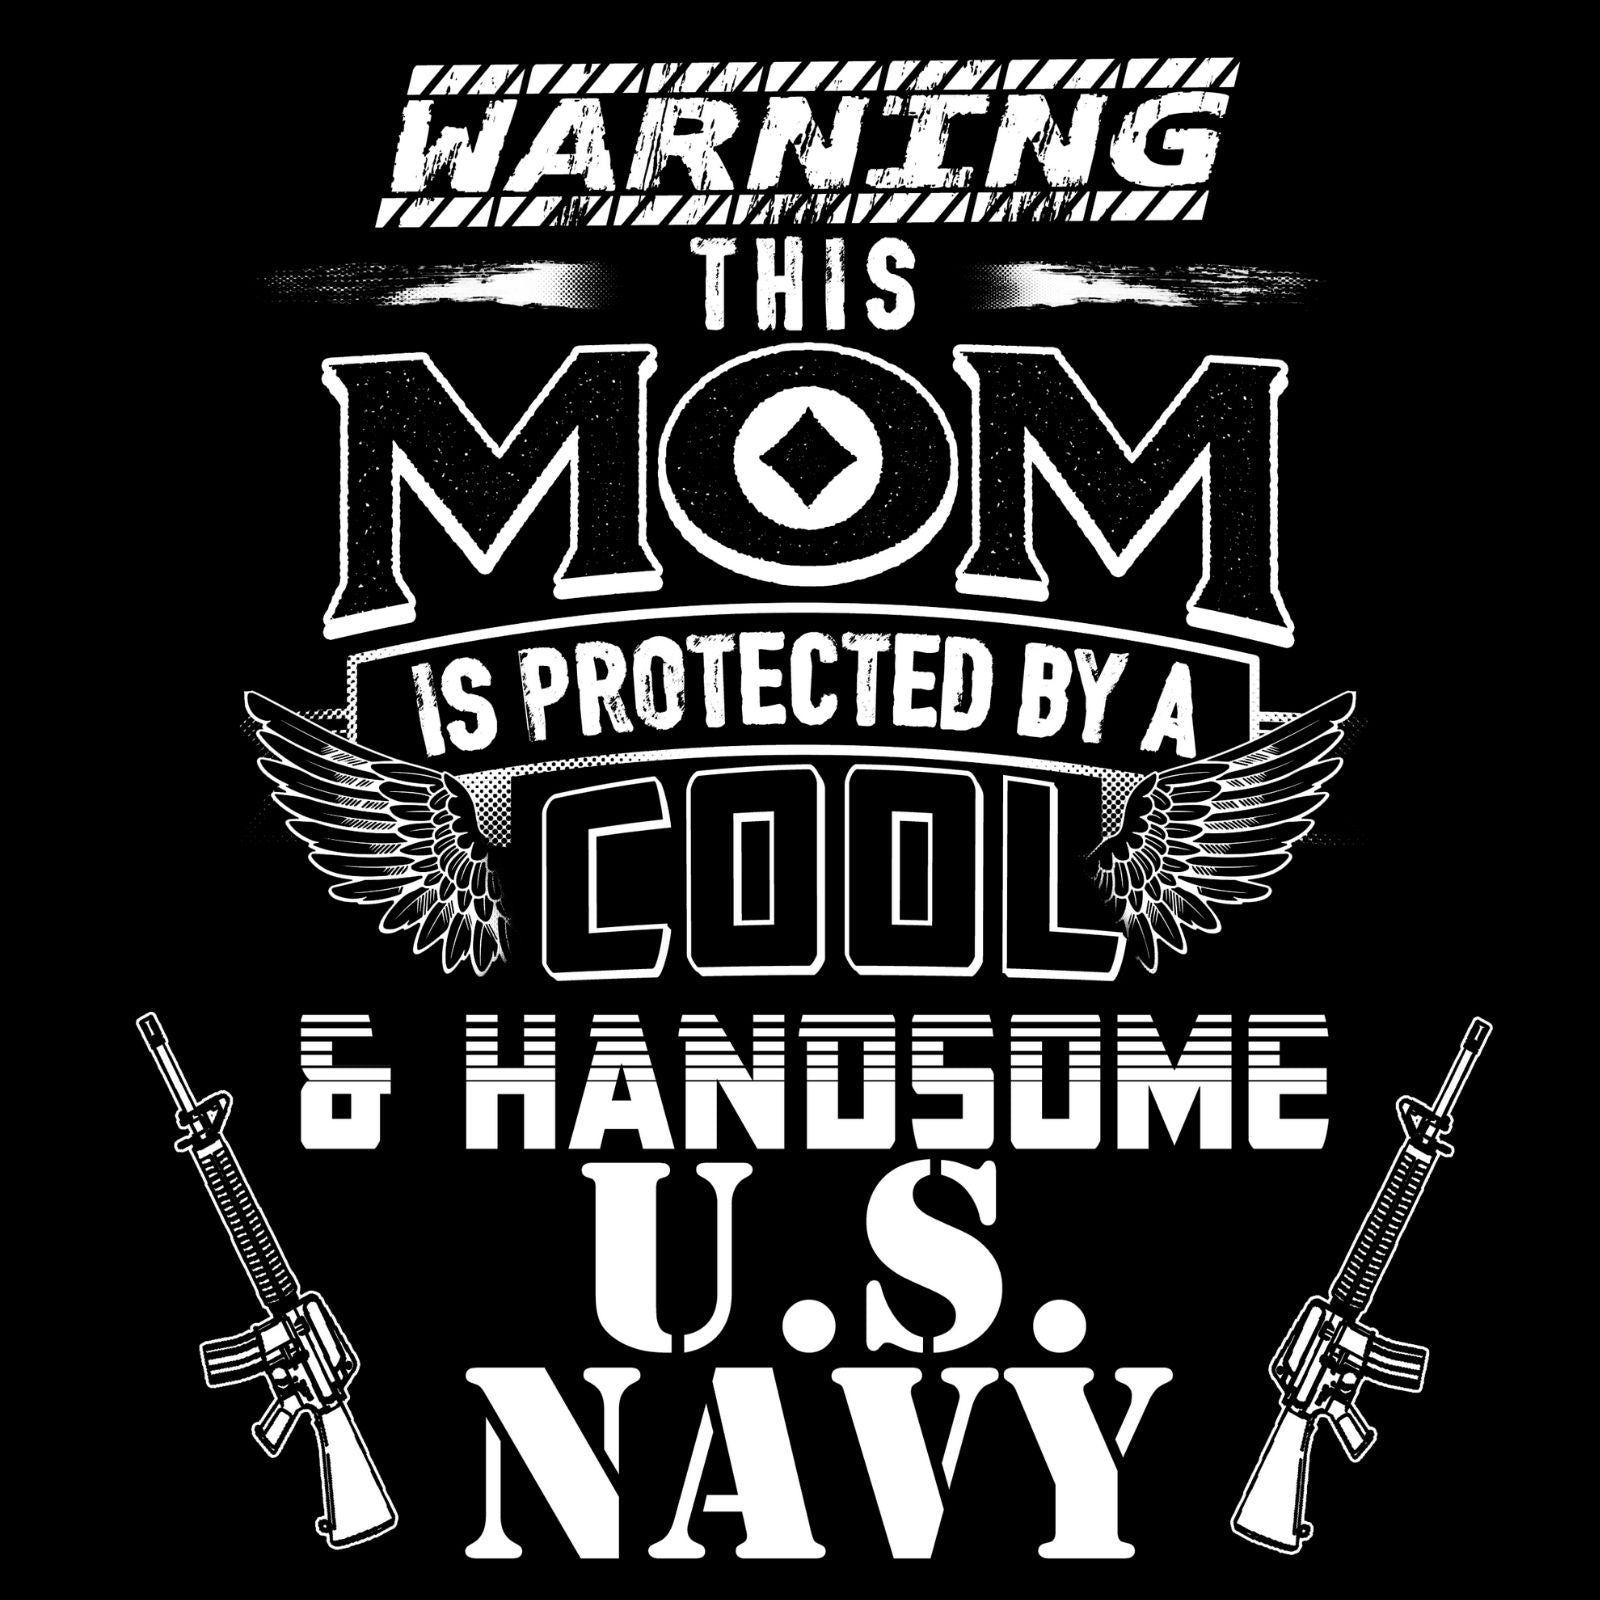 Warning This Mom Is Protected By a Cool & Handsome U.S. Navy - Bastard Graphics